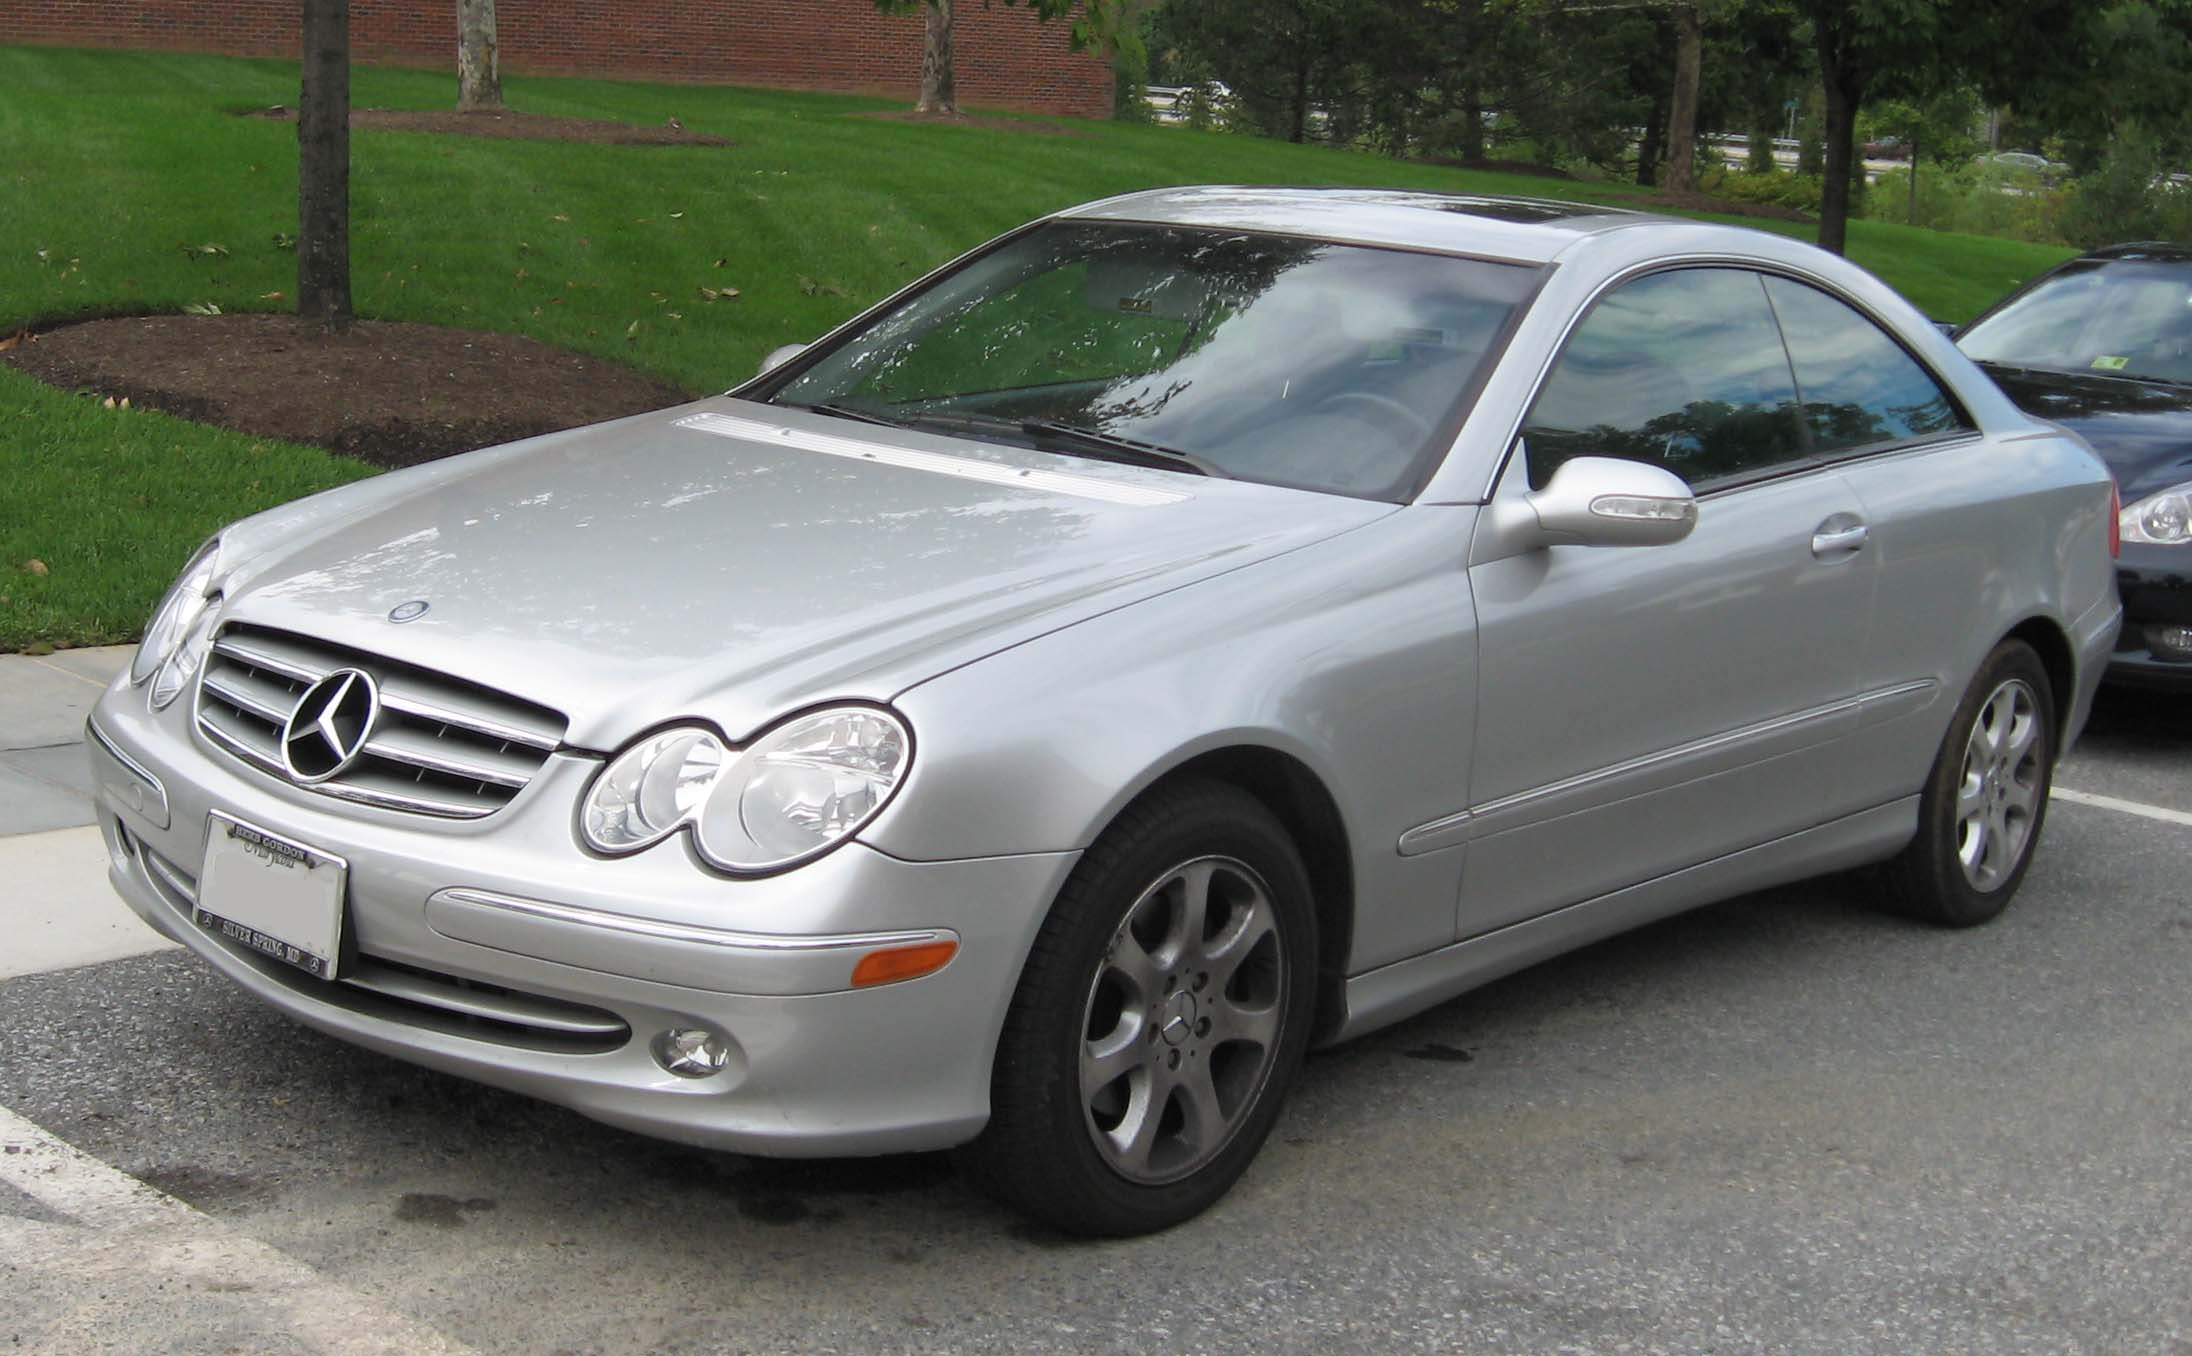 2003 mercedes benz clk class information and photos for 2003 mercedes benz clk